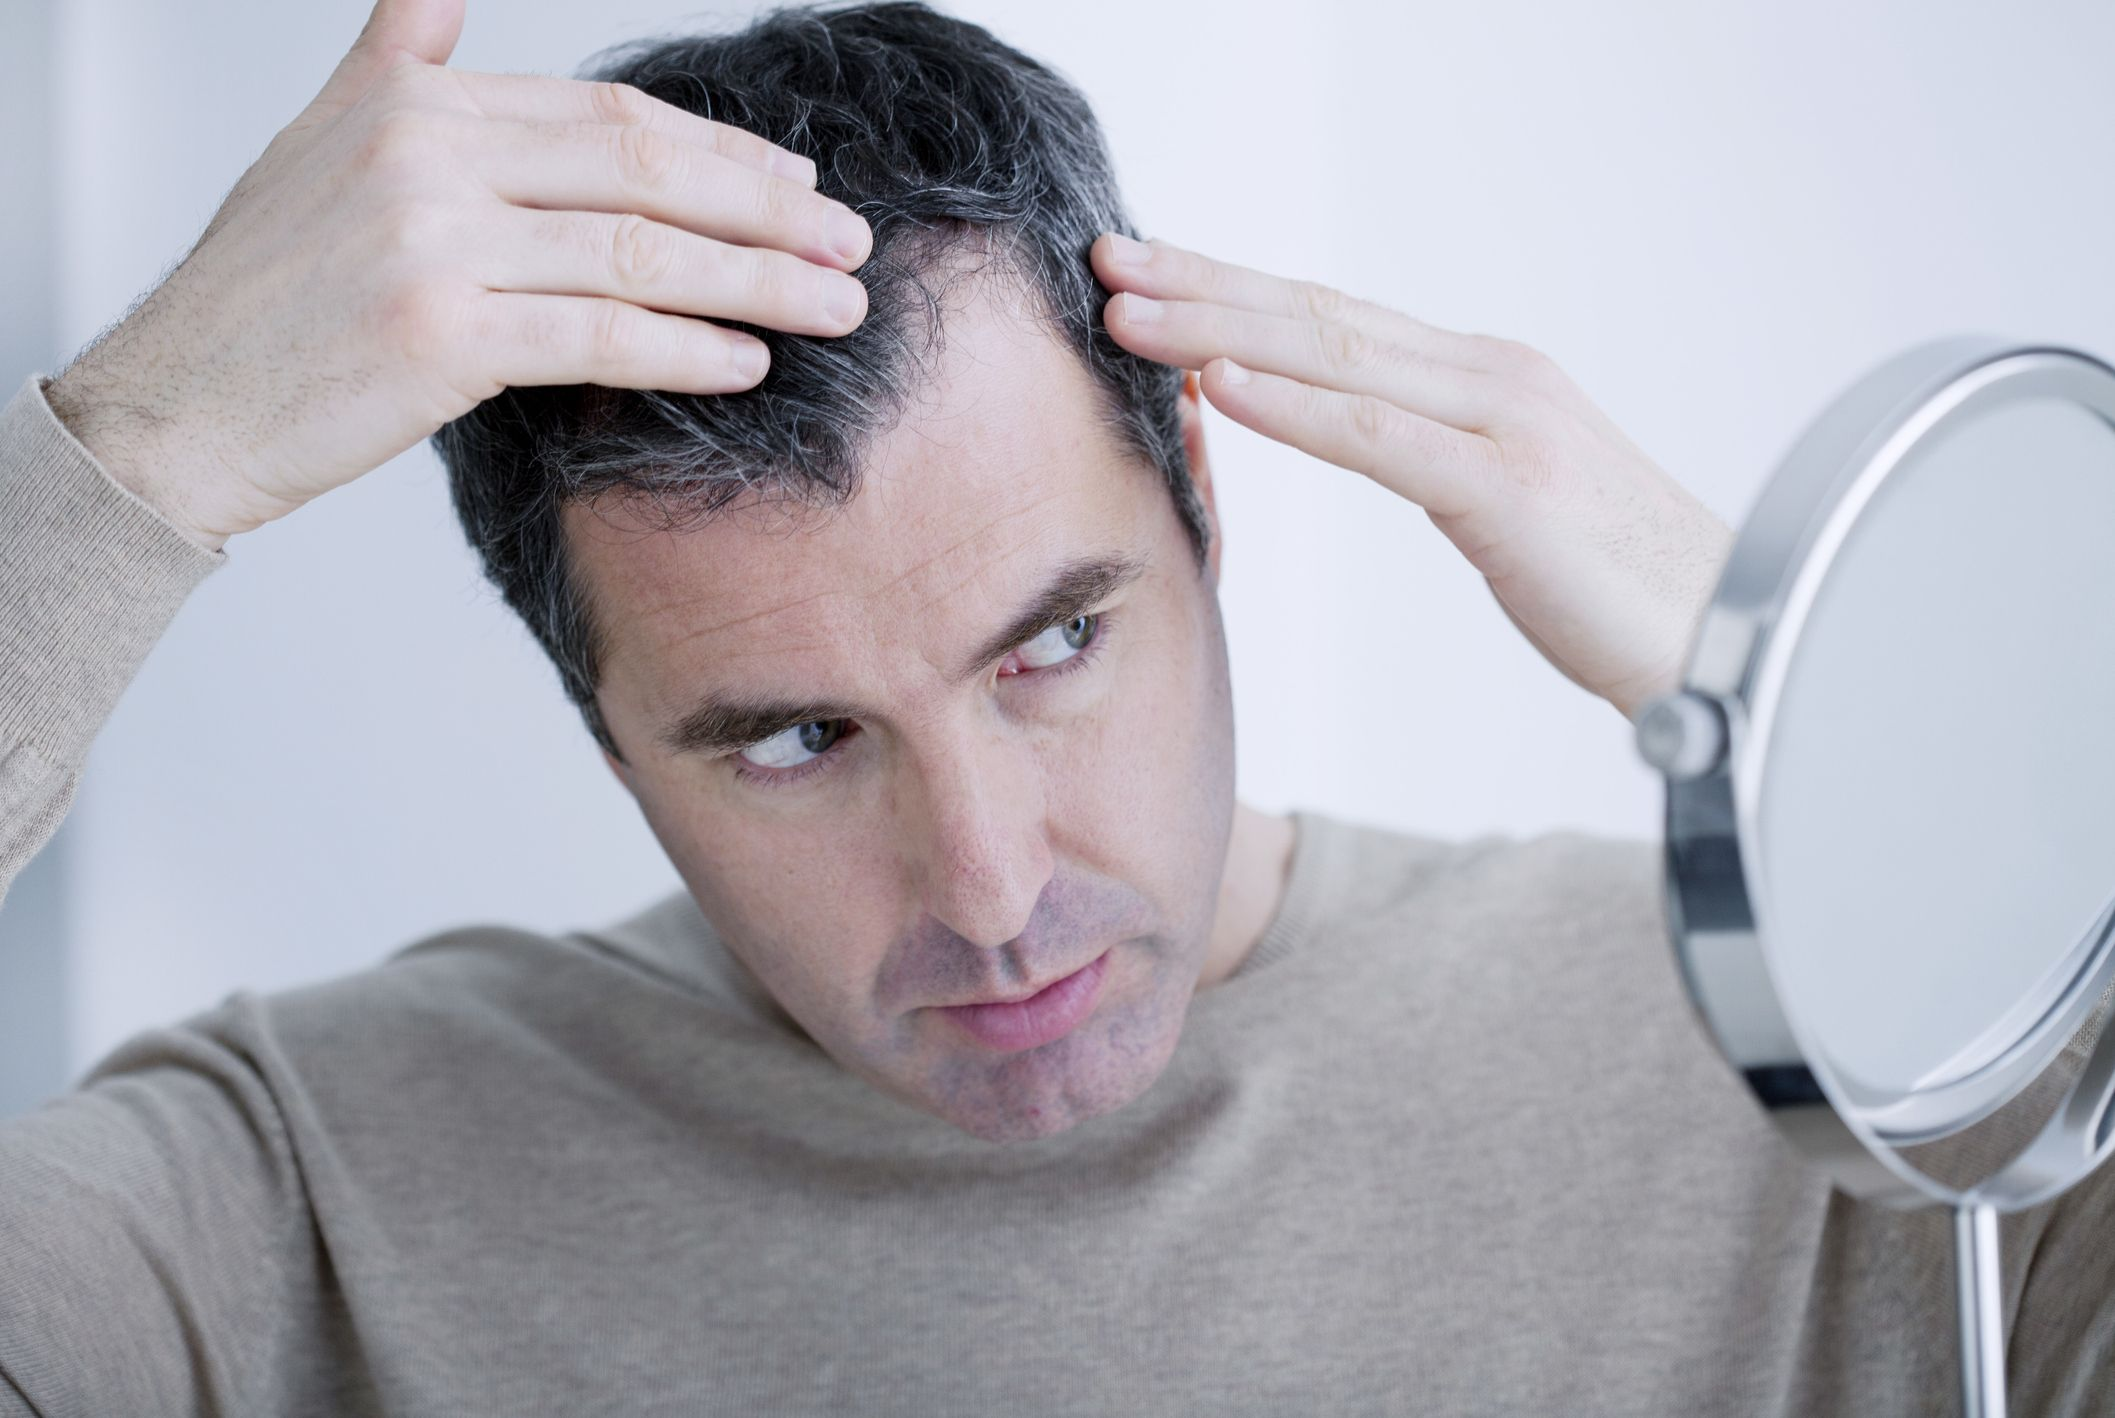 Finasteride 1mg Tablets Propecia Aindeem Uses Dosage And Side Effects